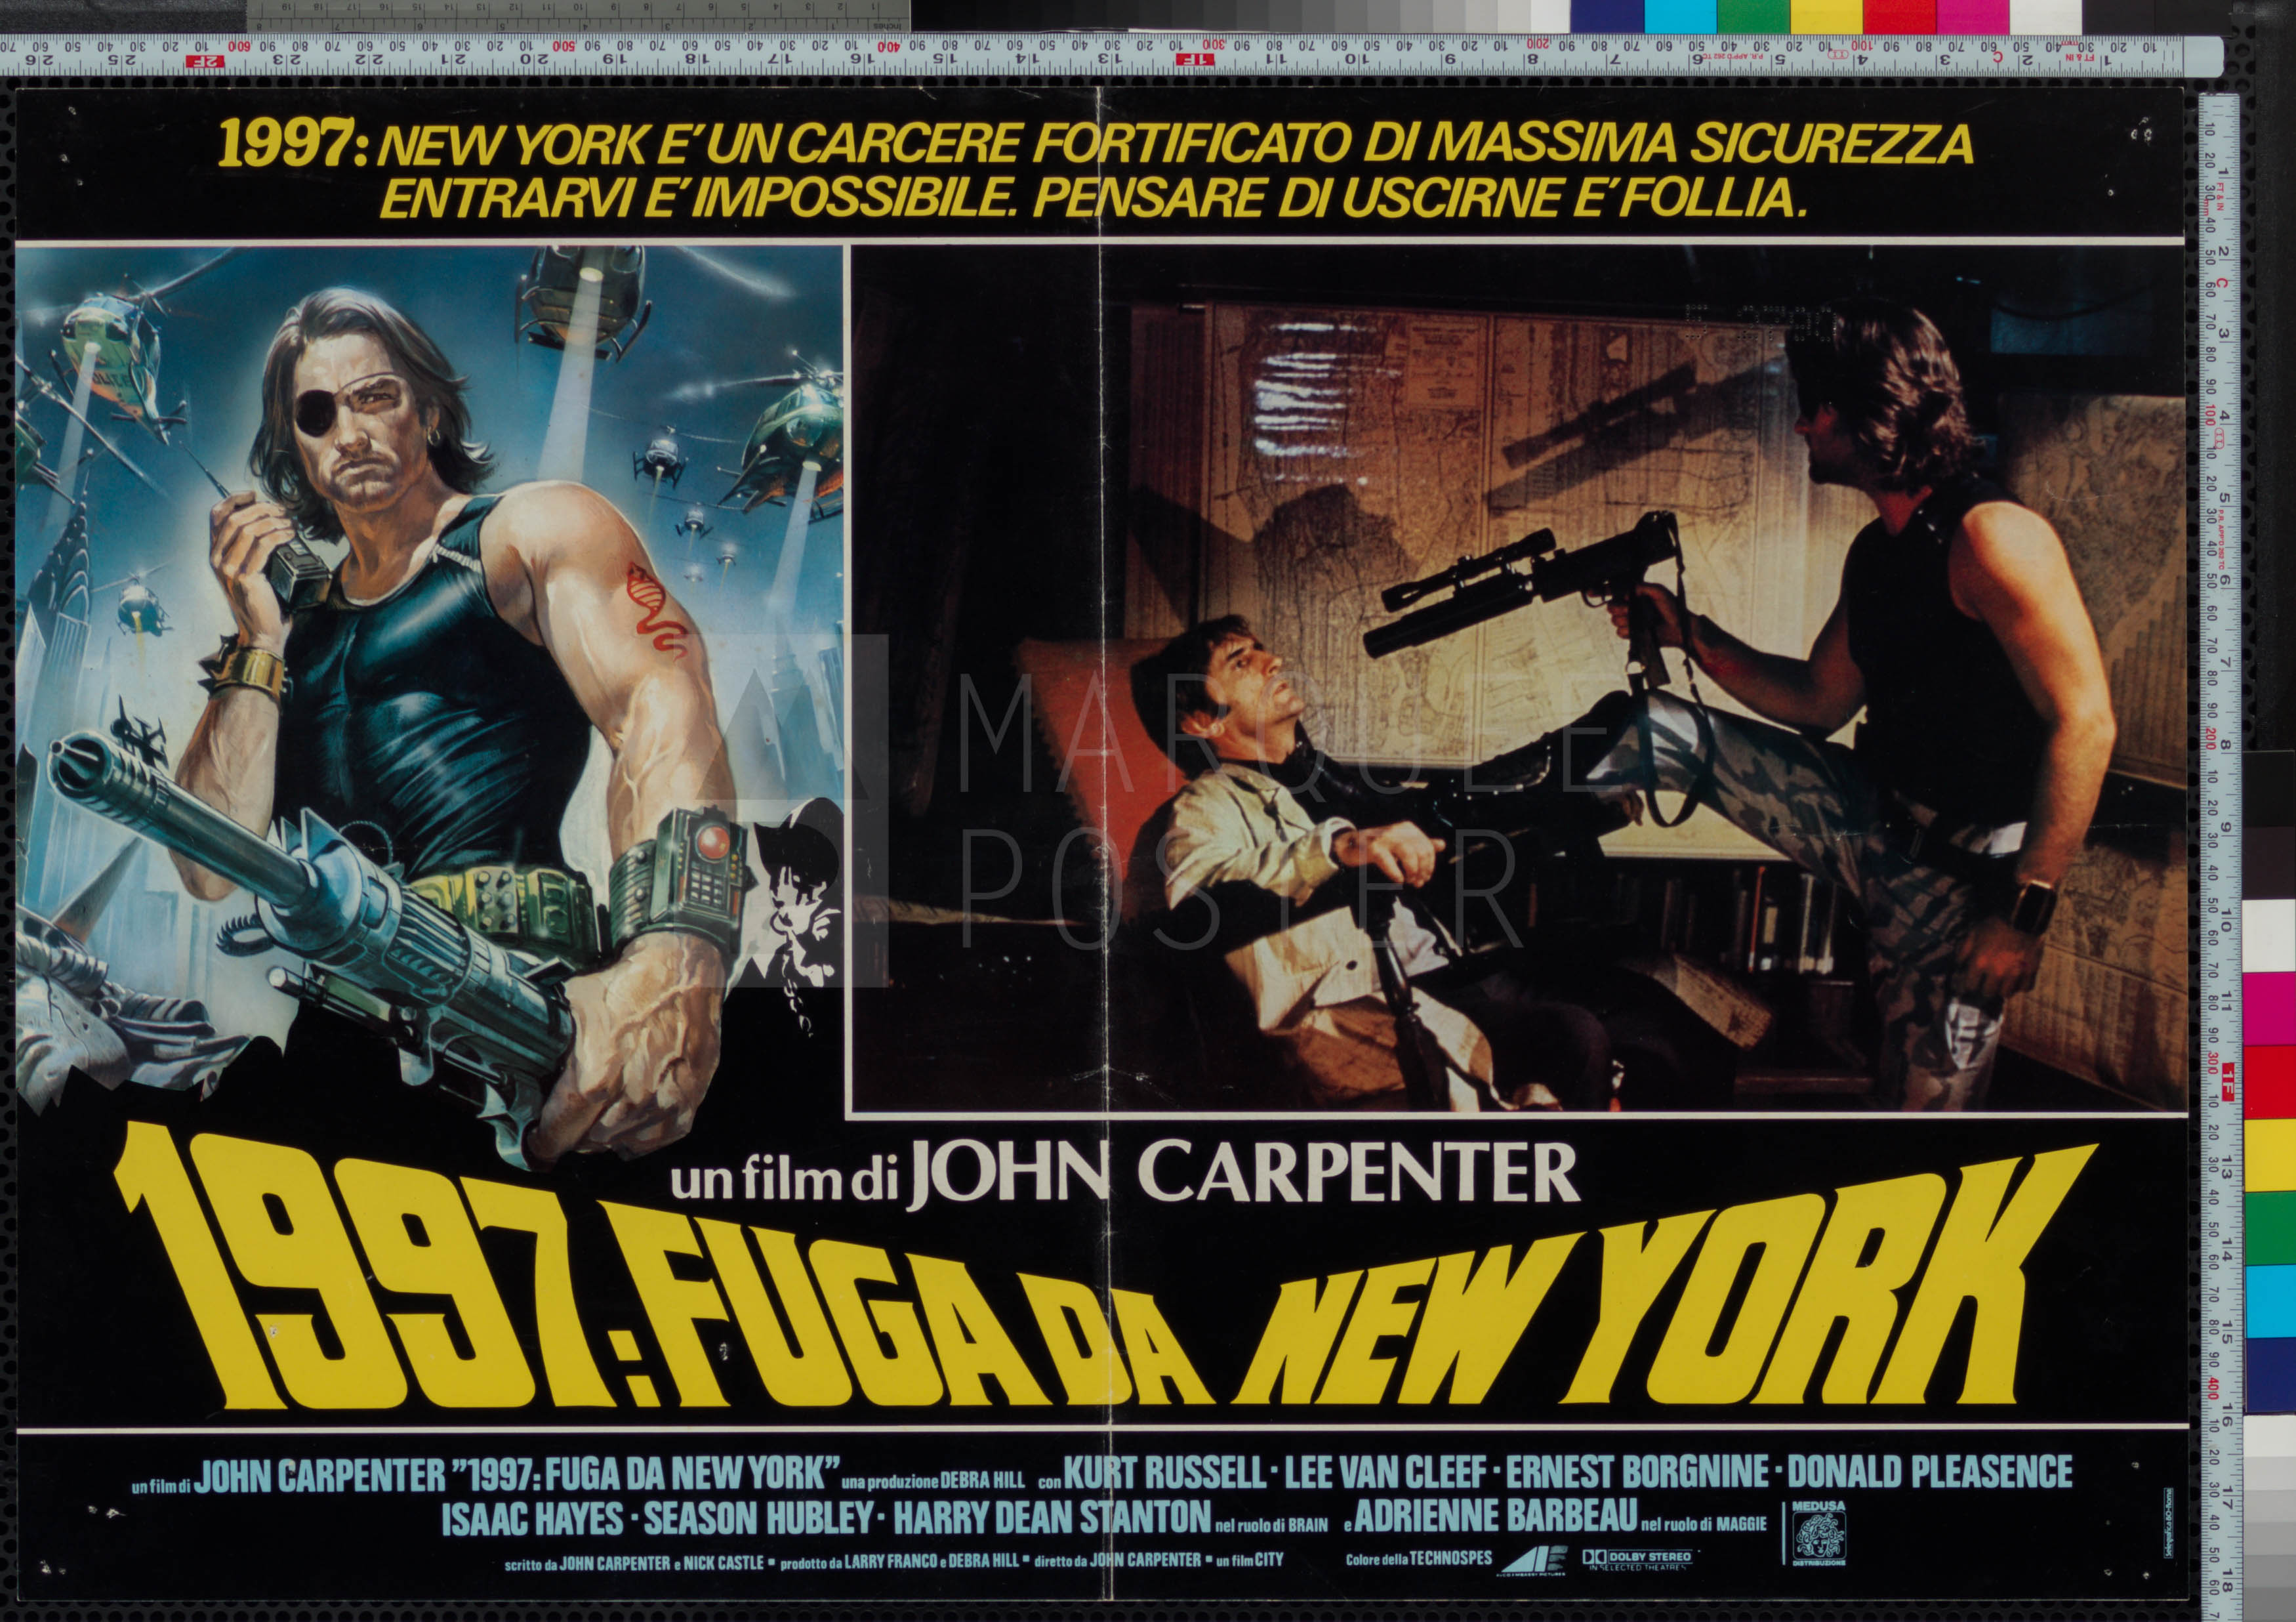 87-escape-from-new-york-mac-10-style-italian-photobusta-1981-02